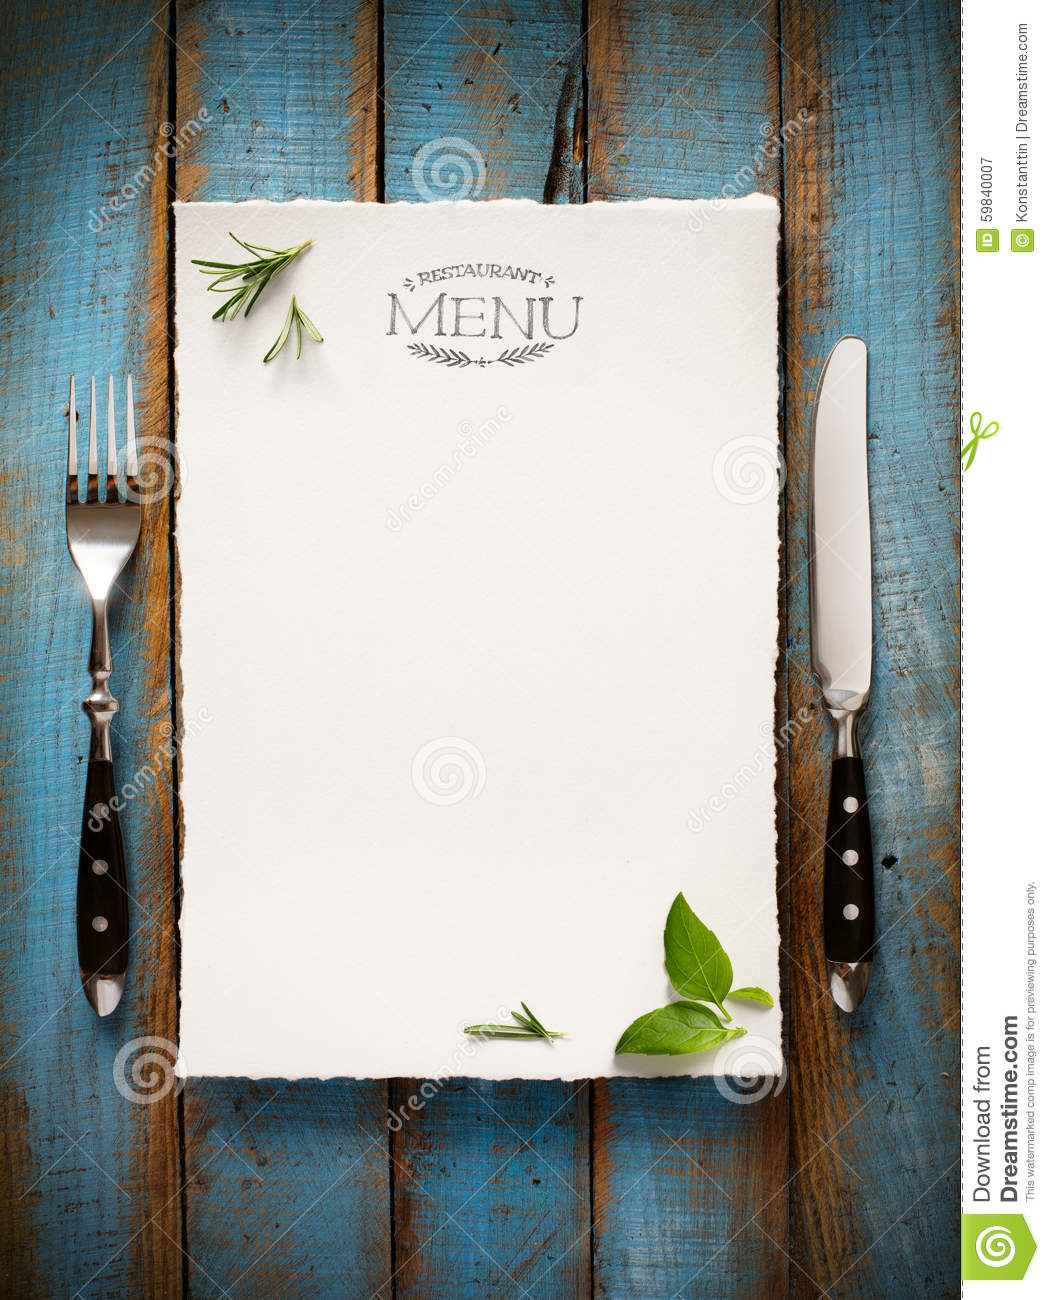 Art Cafe menu restaurant brochure. Food design template